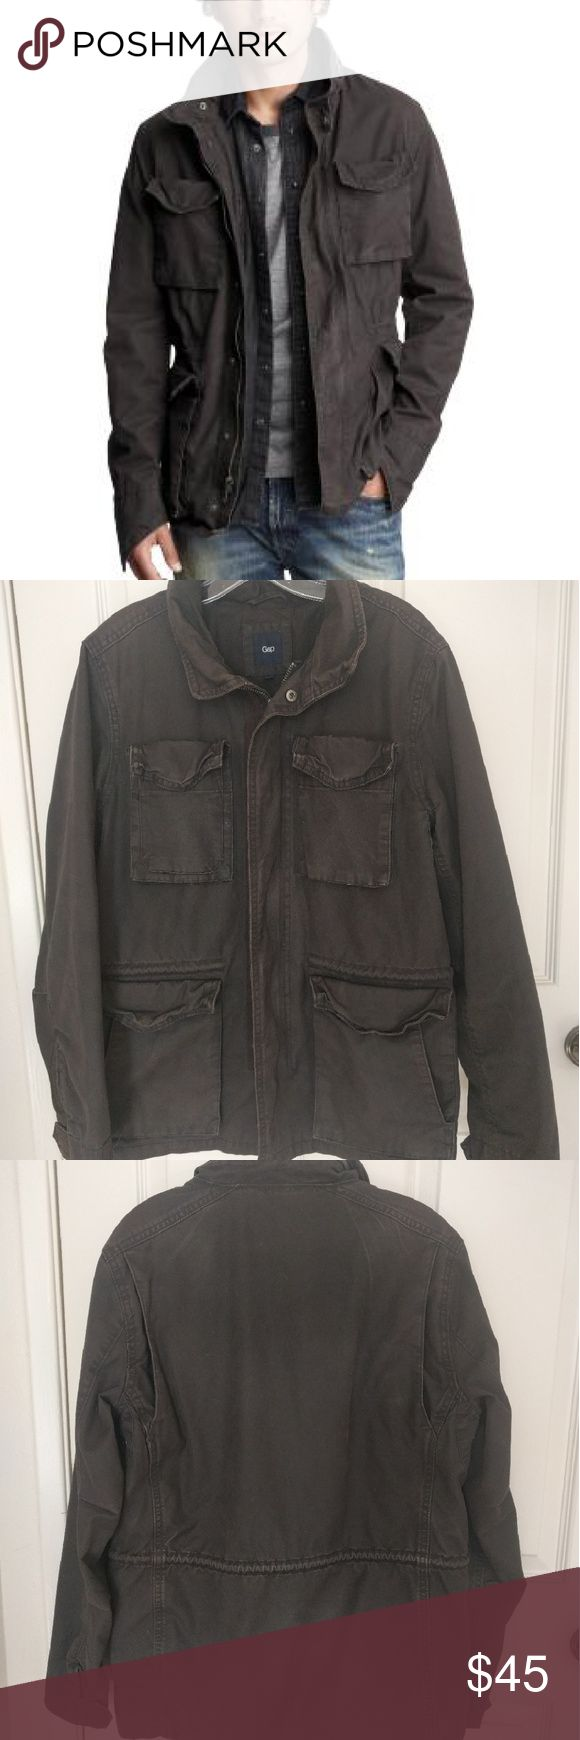 GAP men's charcoal grey utility jacket Dark grey men's cotton canvas utility jacket. Lots of roomy pockets and a hidden collapsible hood in the collar. GAP Jackets & Coats Military & Field